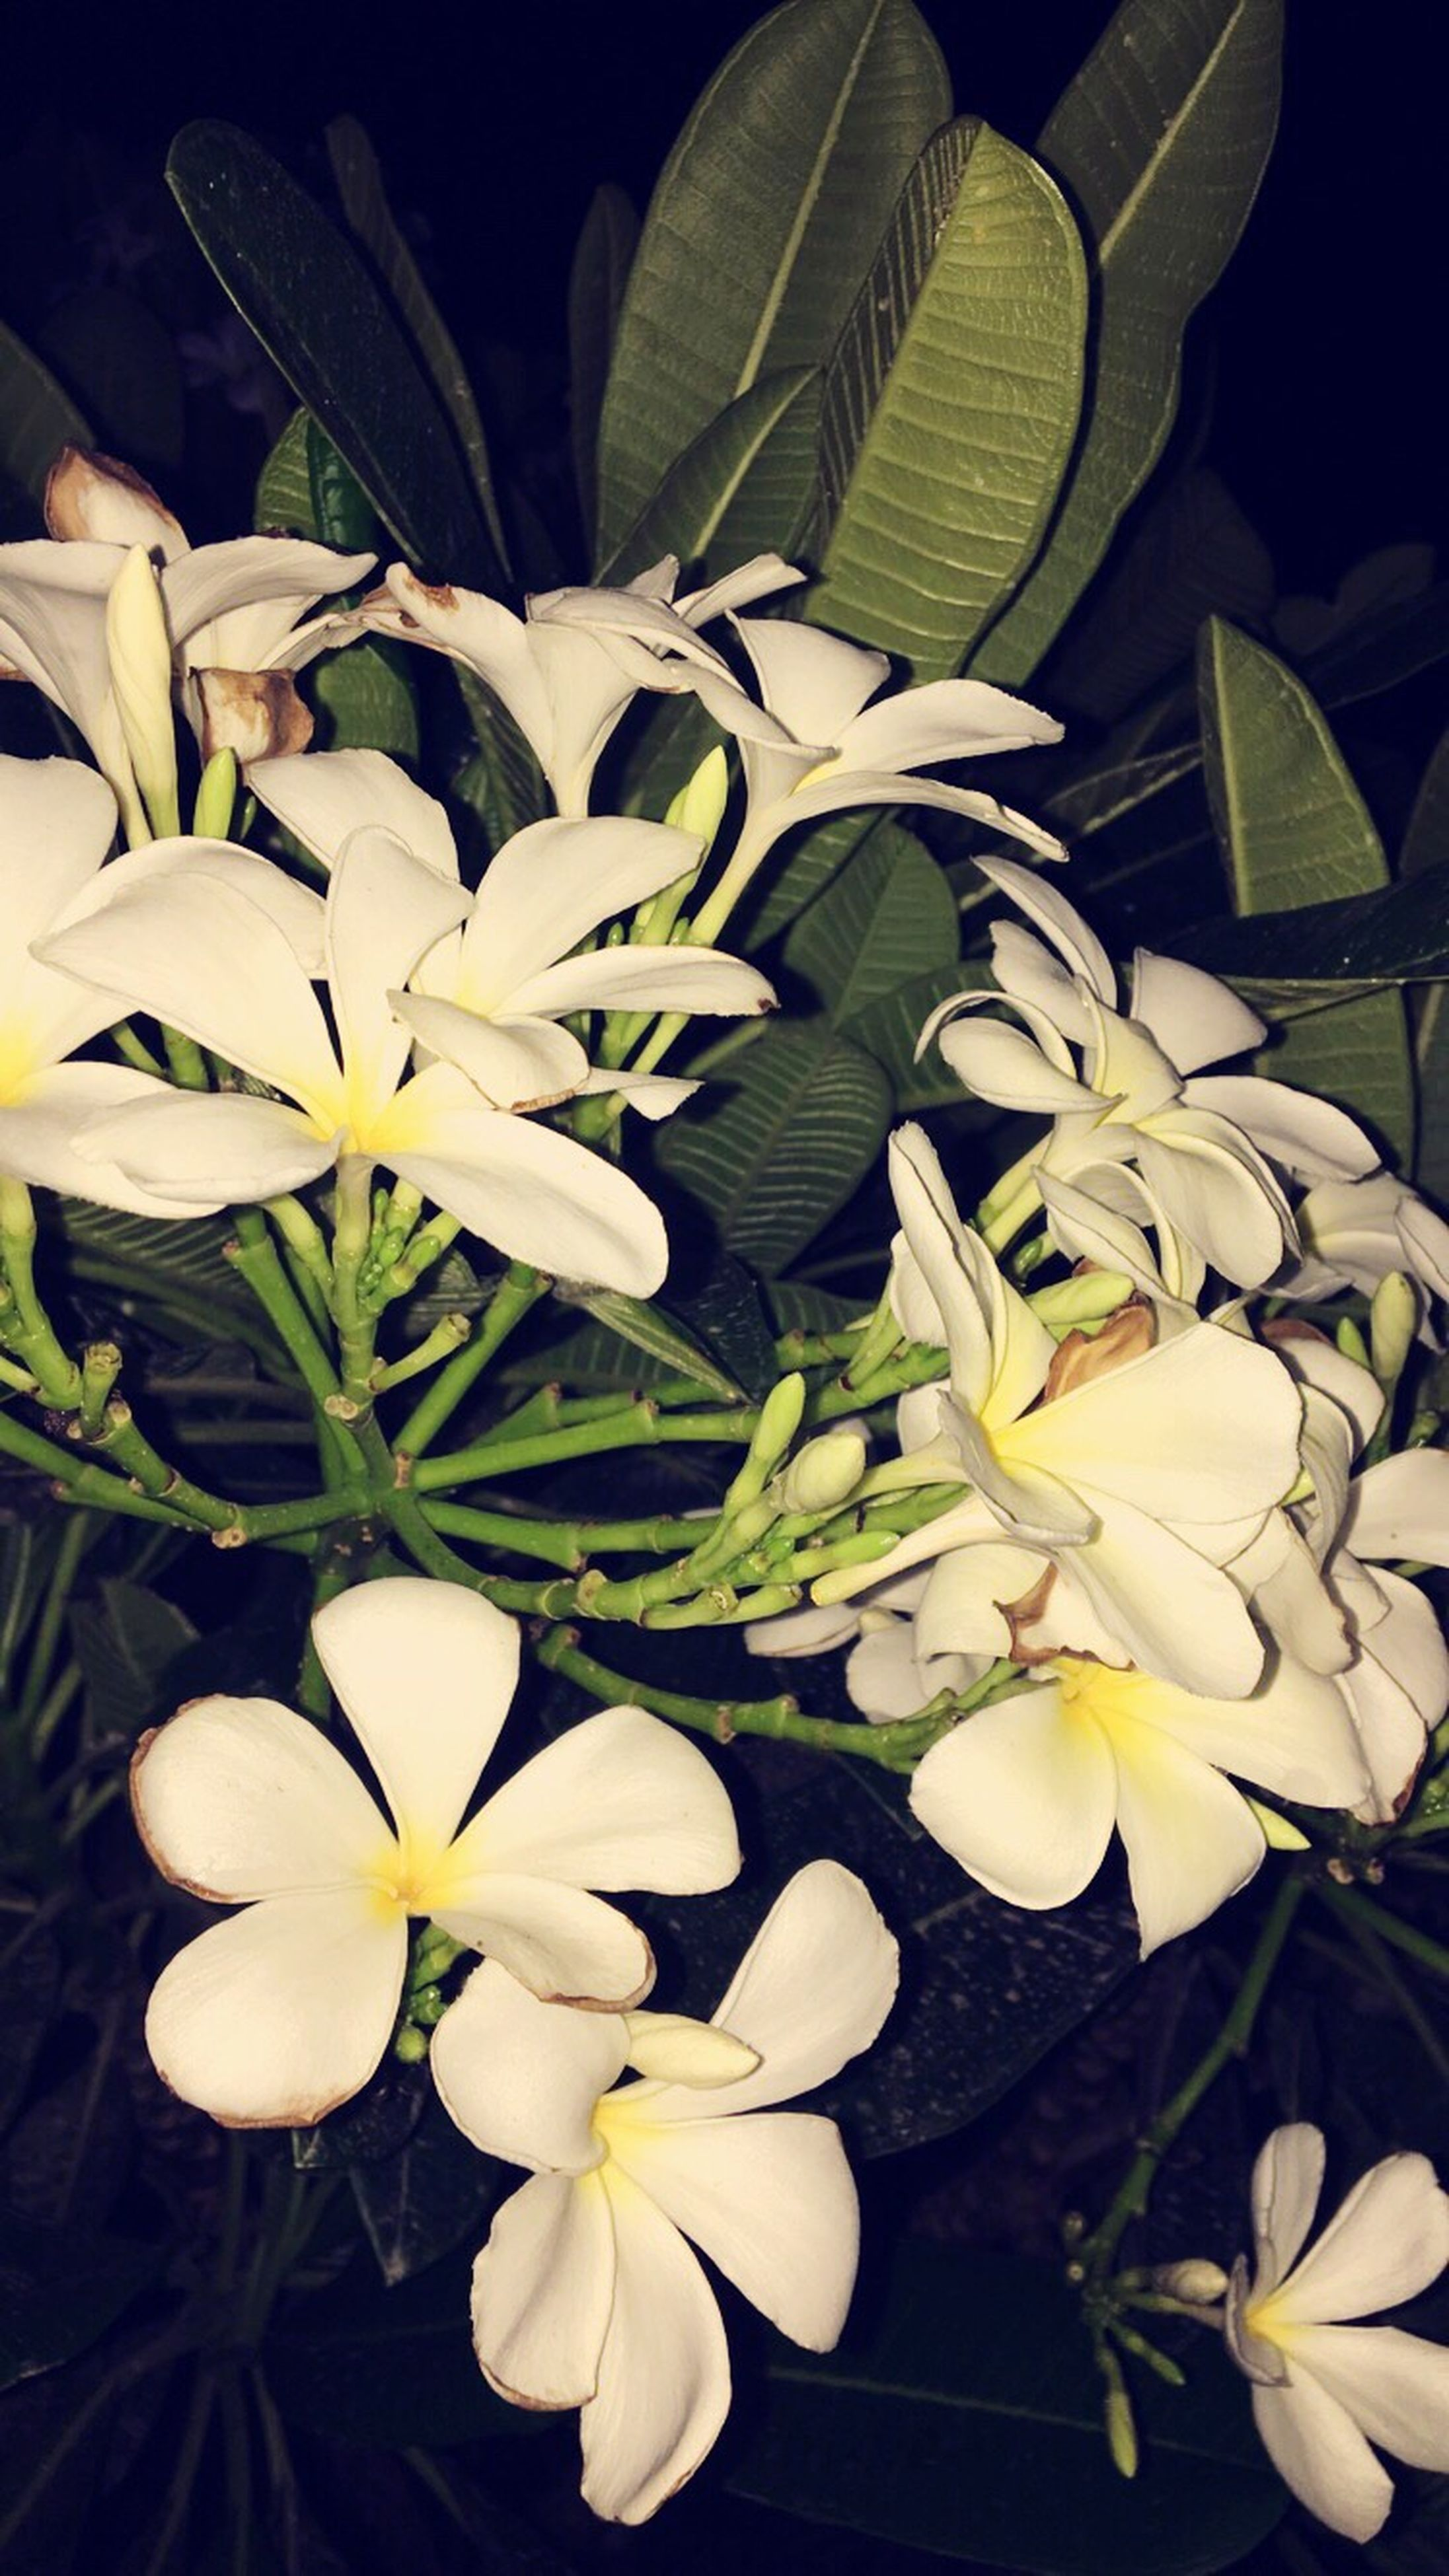 flower, petal, white color, freshness, beauty in nature, flower head, fragility, nature, plant, no people, growth, leaf, close-up, bouquet, blooming, outdoors, day, frangipani